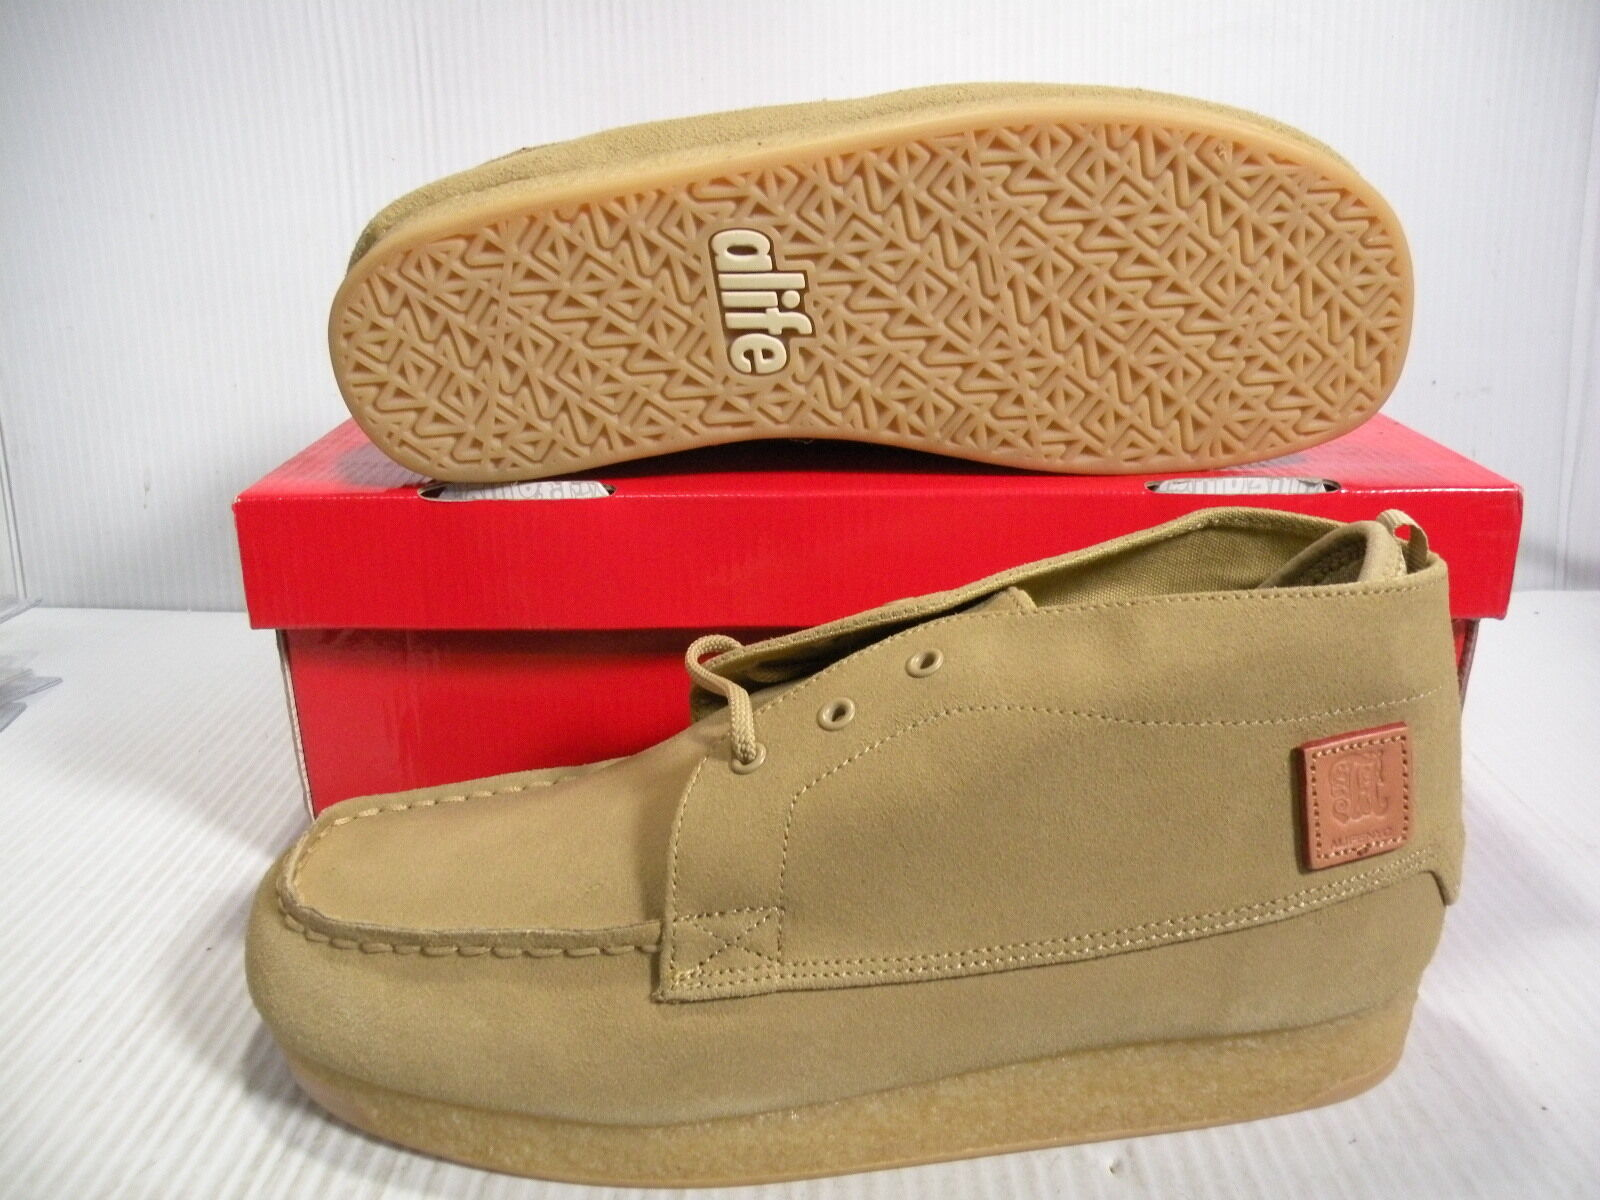 ALIFE KENNEDY HIGH SUEDE SNEAKERS MEN SHOES SAND F92KHS1 SIZE 9.5 NEW